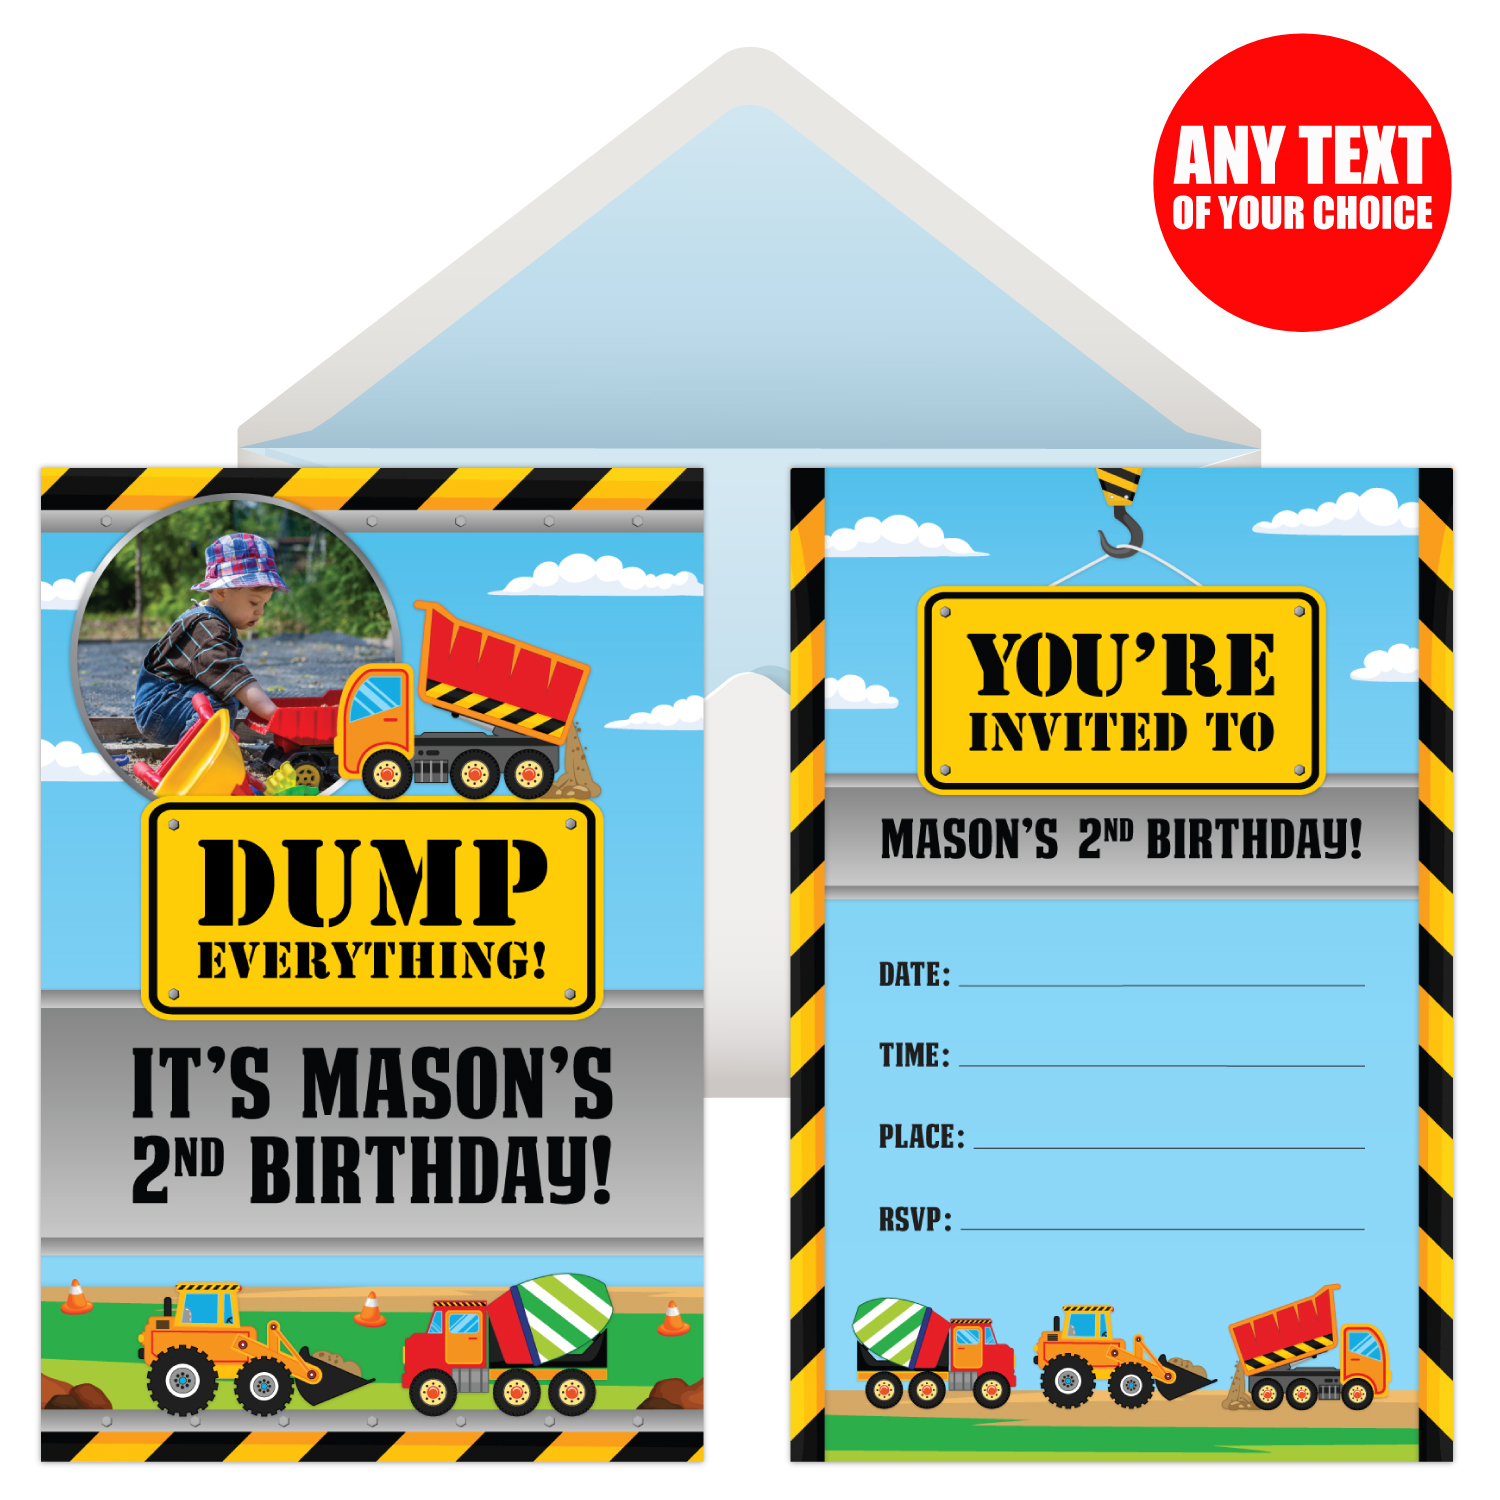 Construction pals personalized photo invitations 8 pk party please send a high quality photo to ordersopenaparty with your order number in the subject line stopboris Choice Image